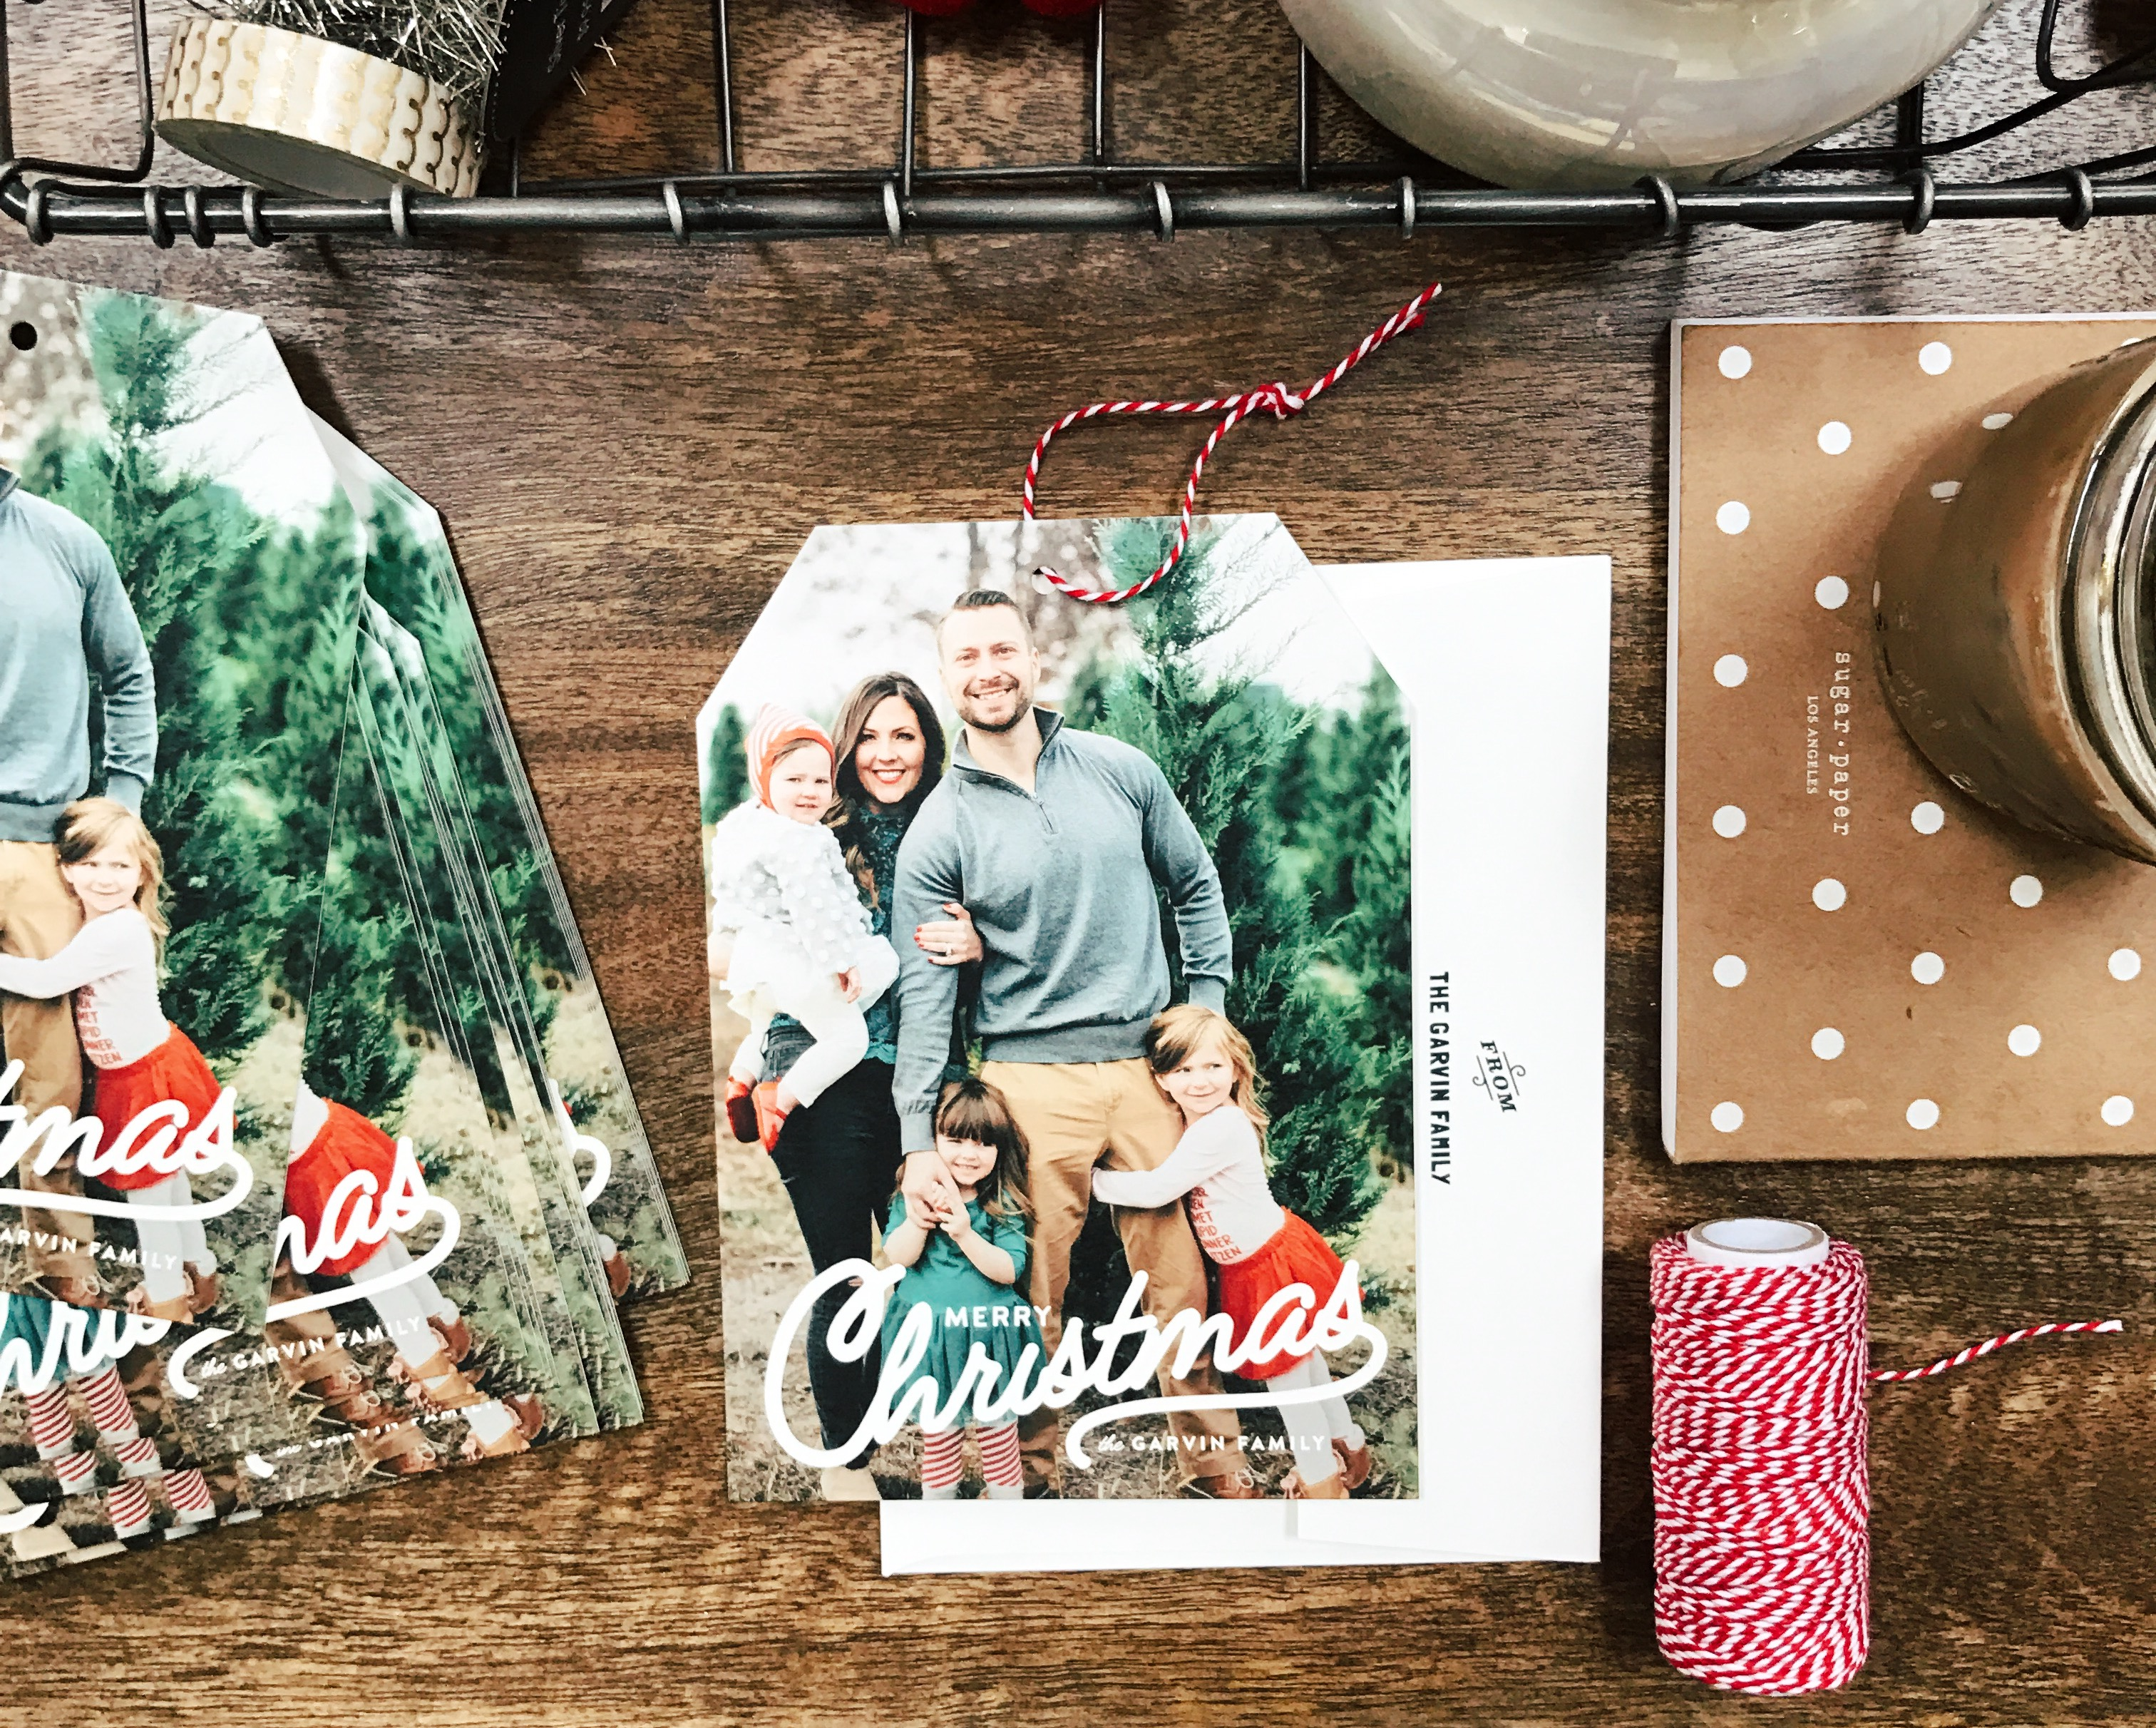 Minted Christmas Cards.Minted Holiday Cards Giveaway Garvinandco Com